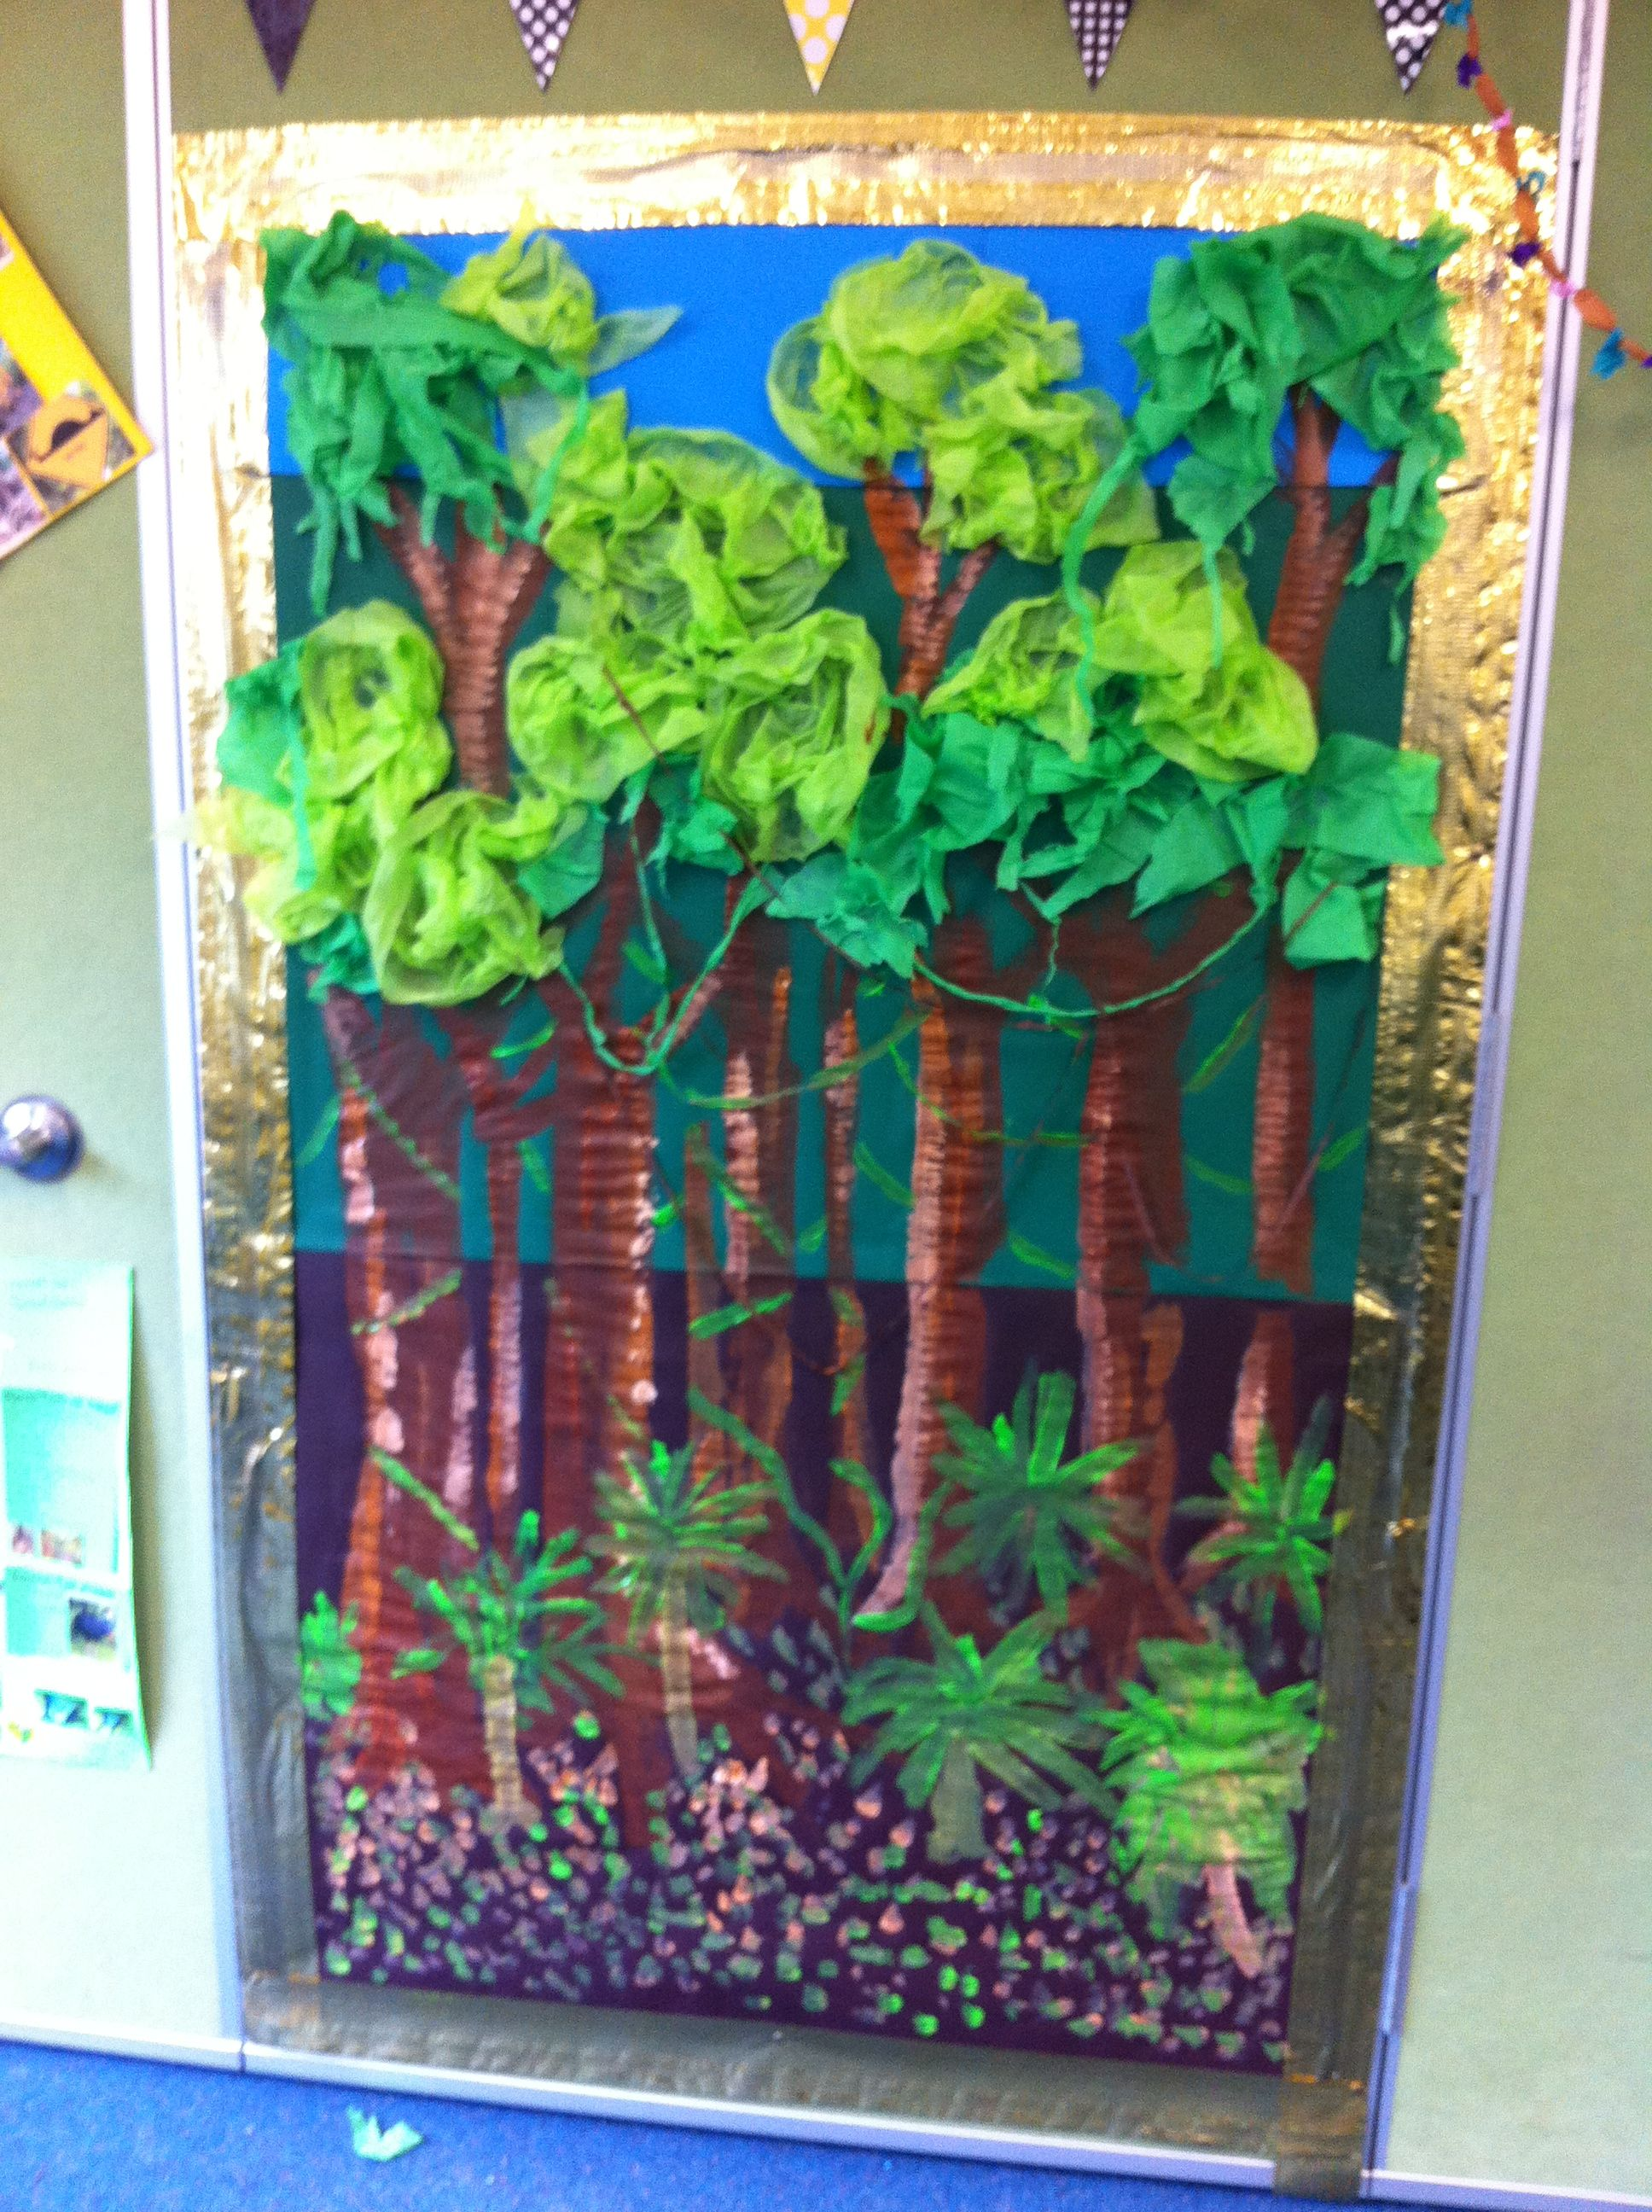 Rainforest Wall As A Class We Later Named The Layers Of The Rainforest And Discussed What